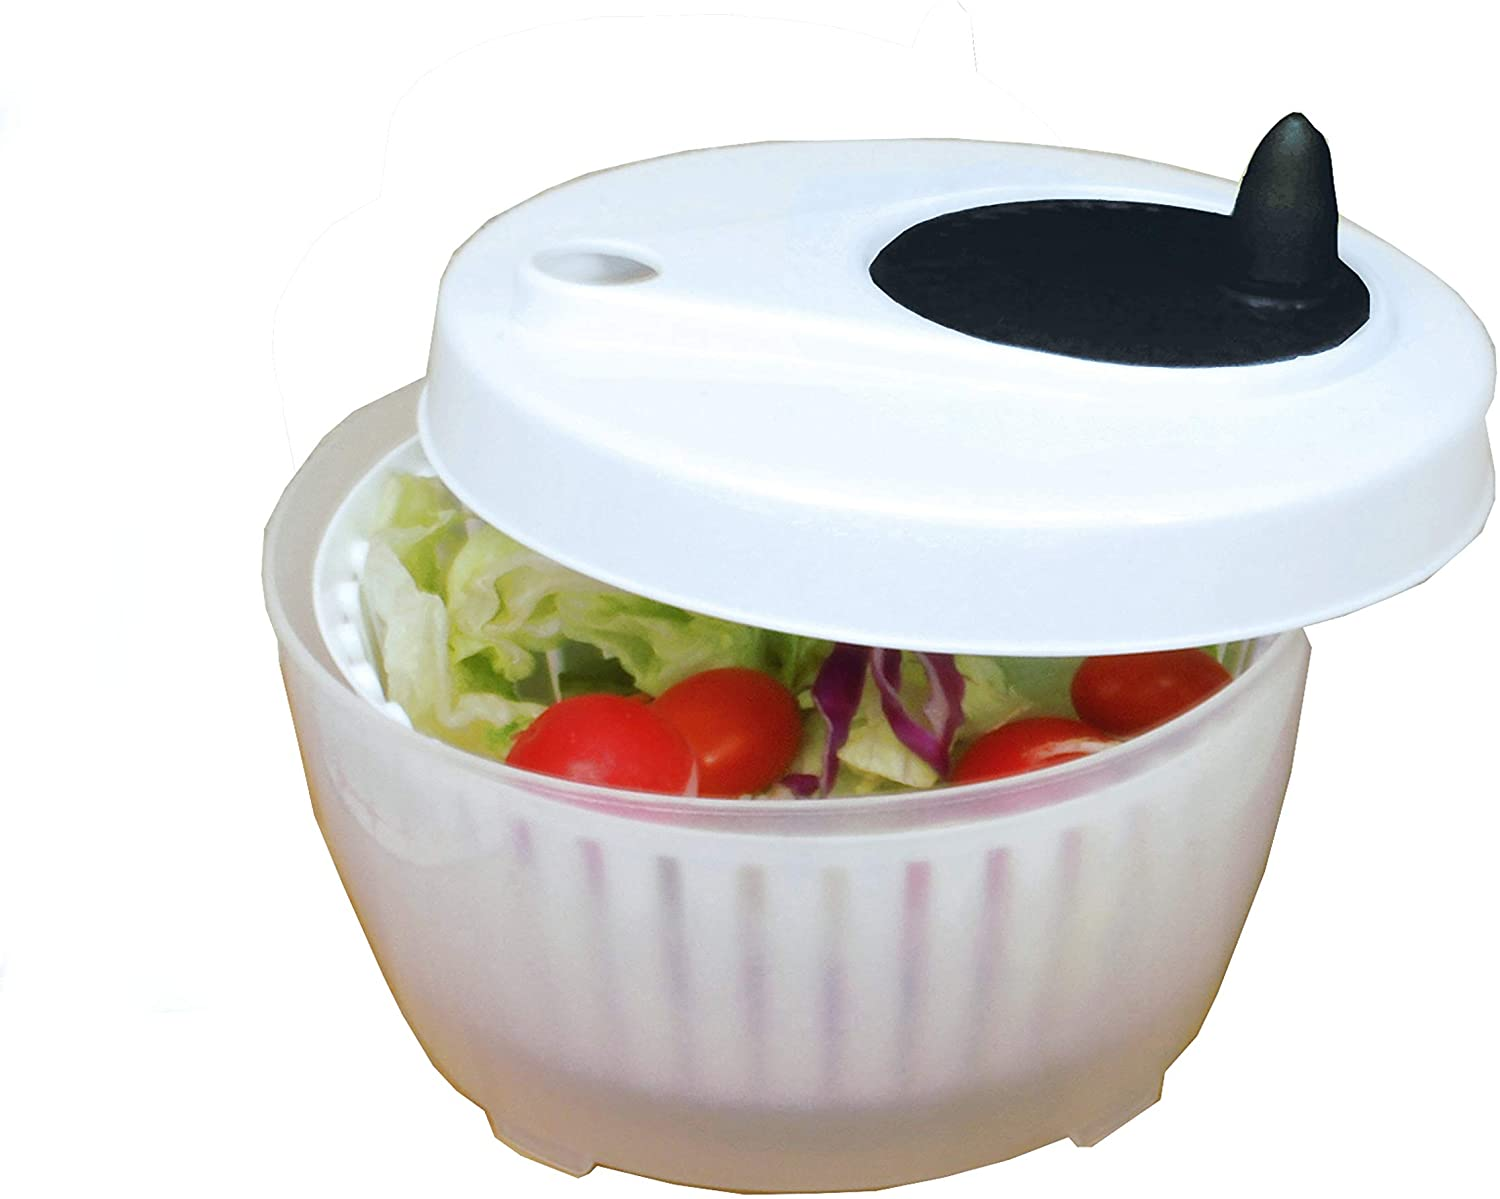 ExcelSteel Functional Fruits Max 49% OFF Vegetables Salad Large special price !! Spinner Mini 1.